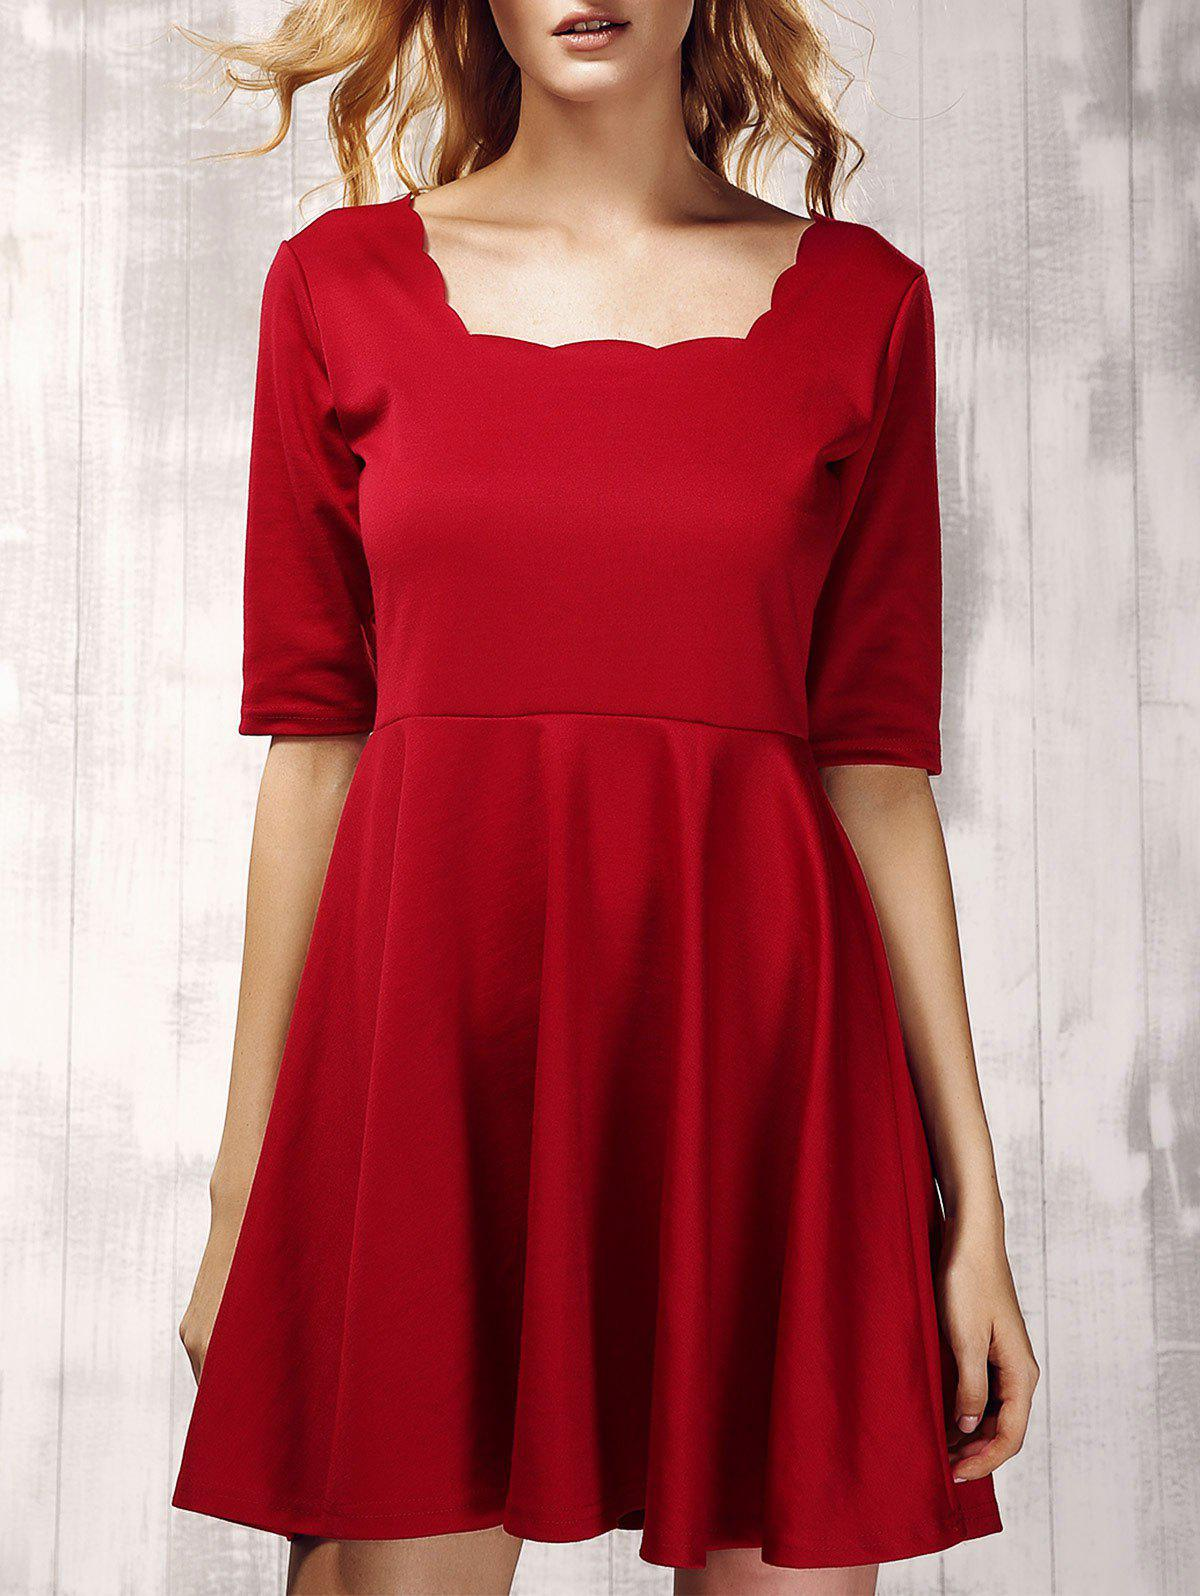 Stylish Women's 1/2 Sleeve Pure Color Pleated Dress - XL WINE RED